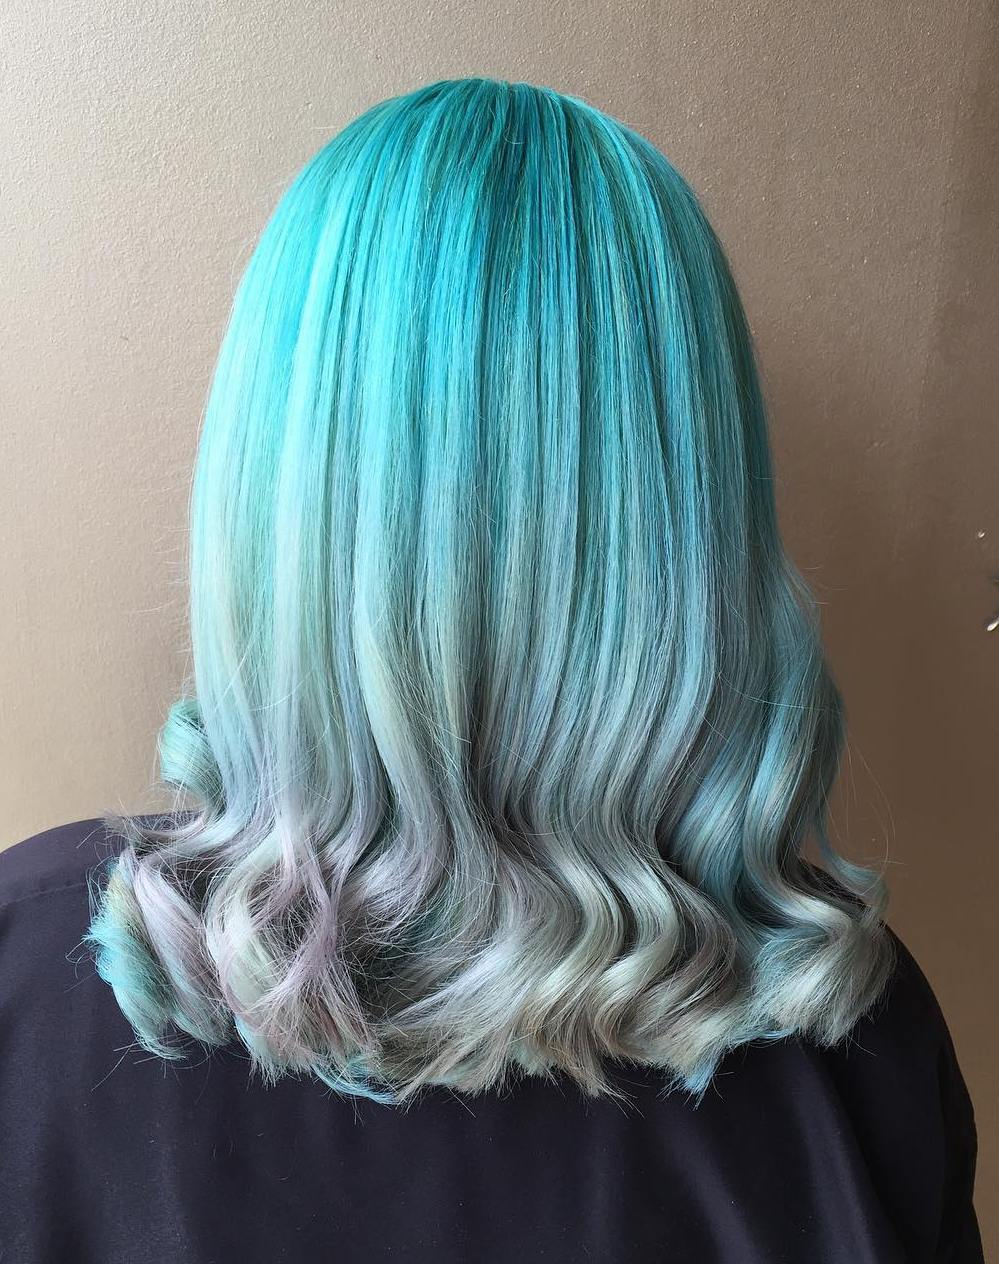 20 Mint Green Hairstyles That Are Totally Amazing recommendations